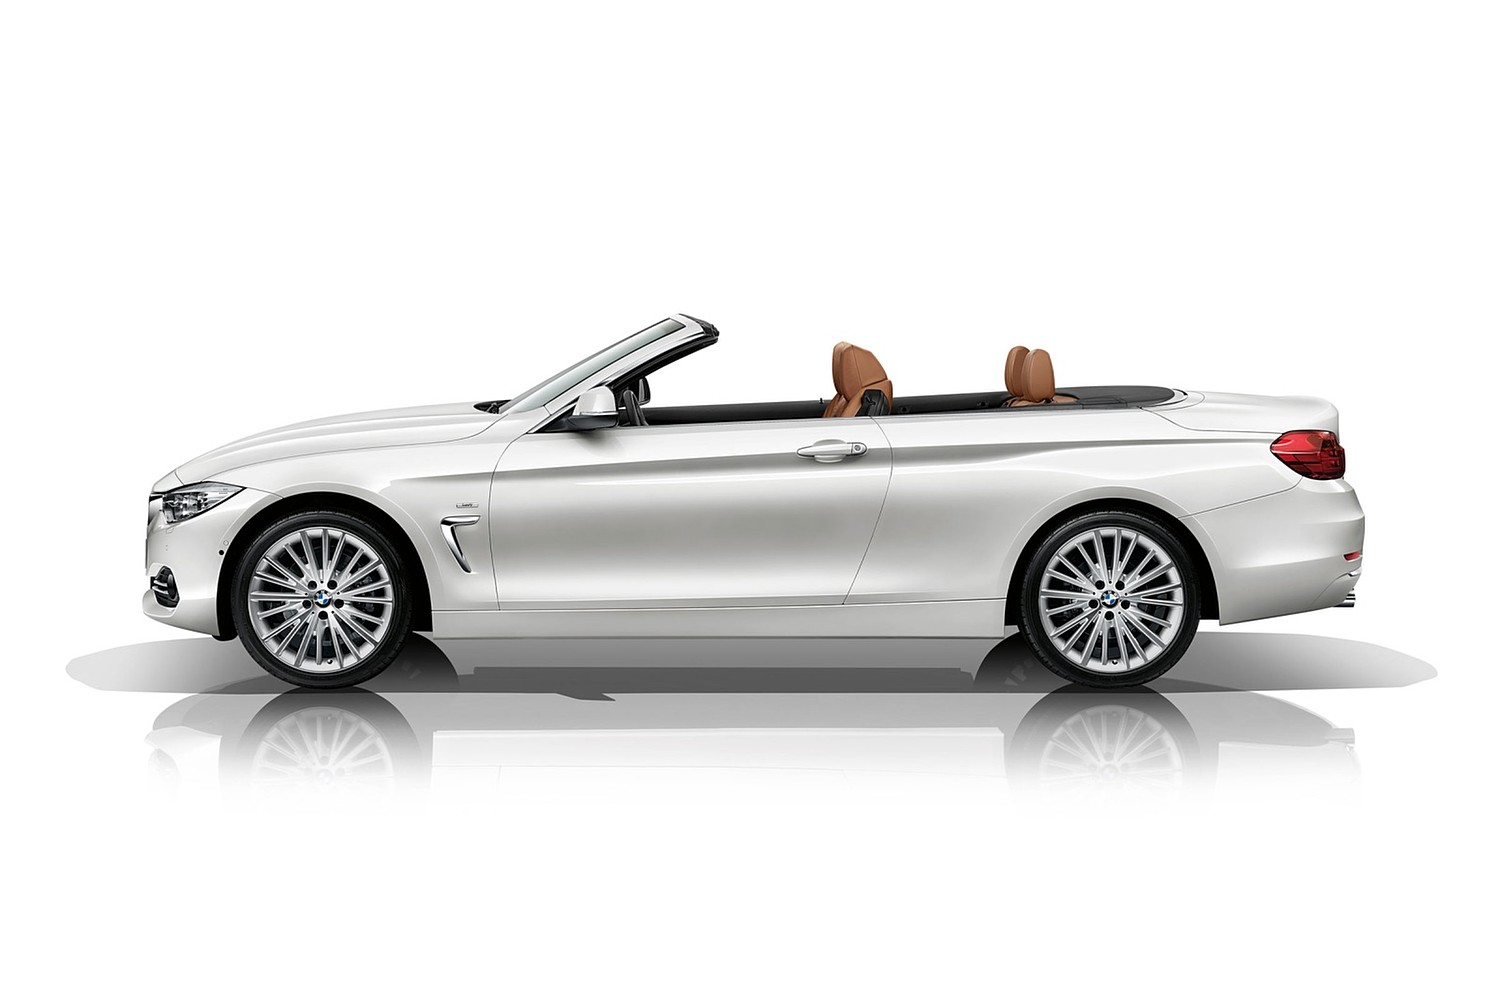 2017 BMW 4 Series 430i SULEV Convertible Exterior. Luxury Line Package Shown.